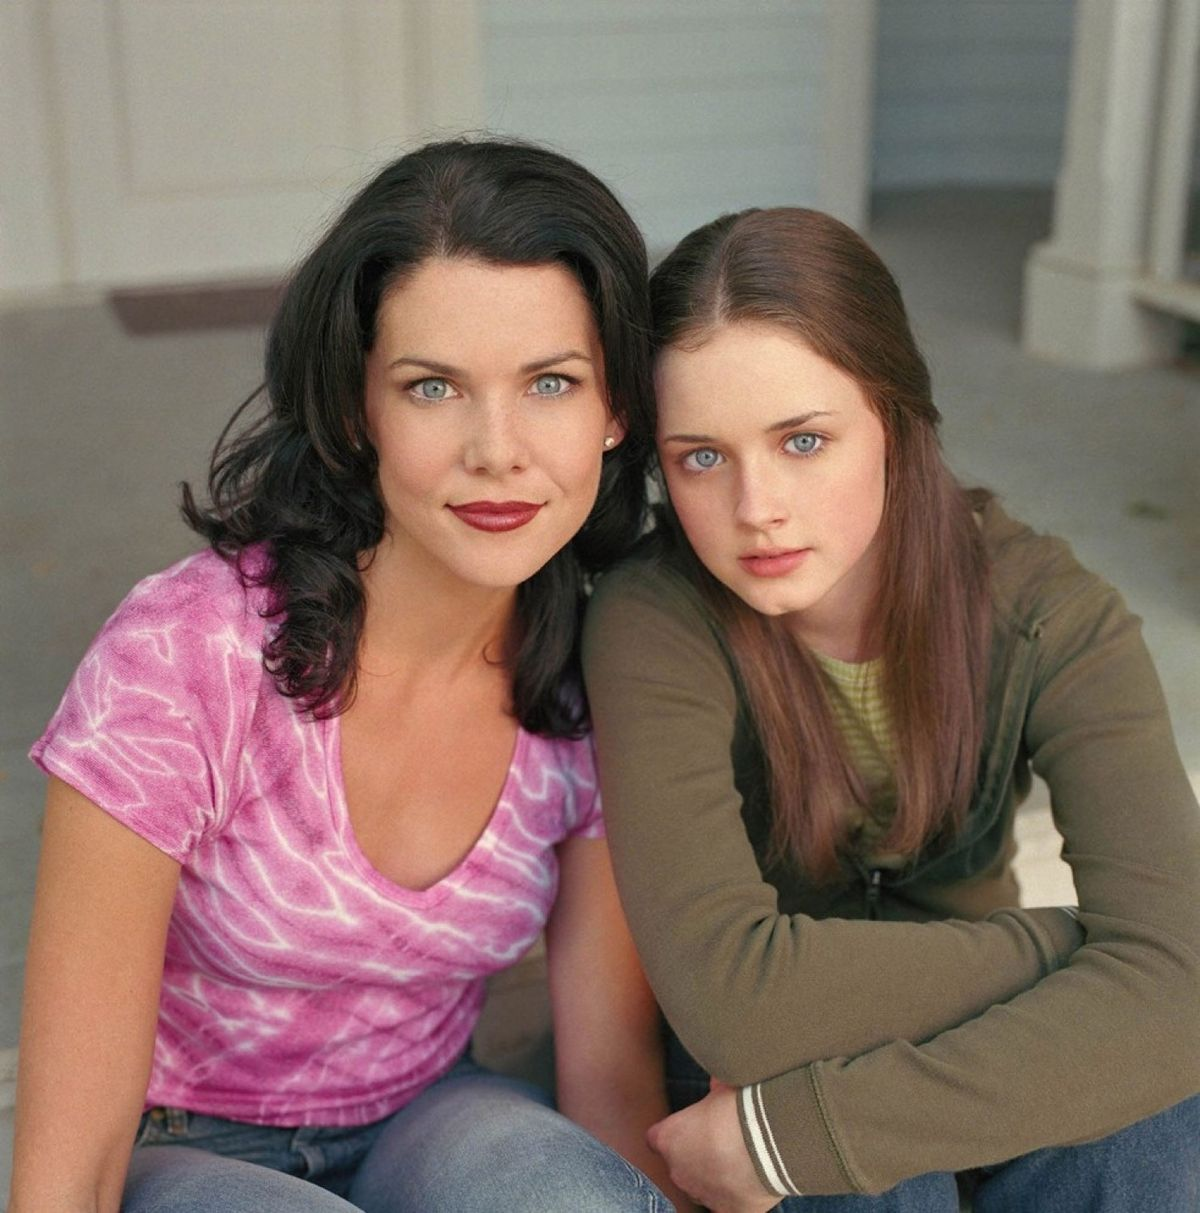 500 Words On The Problems With Gilmore Girls